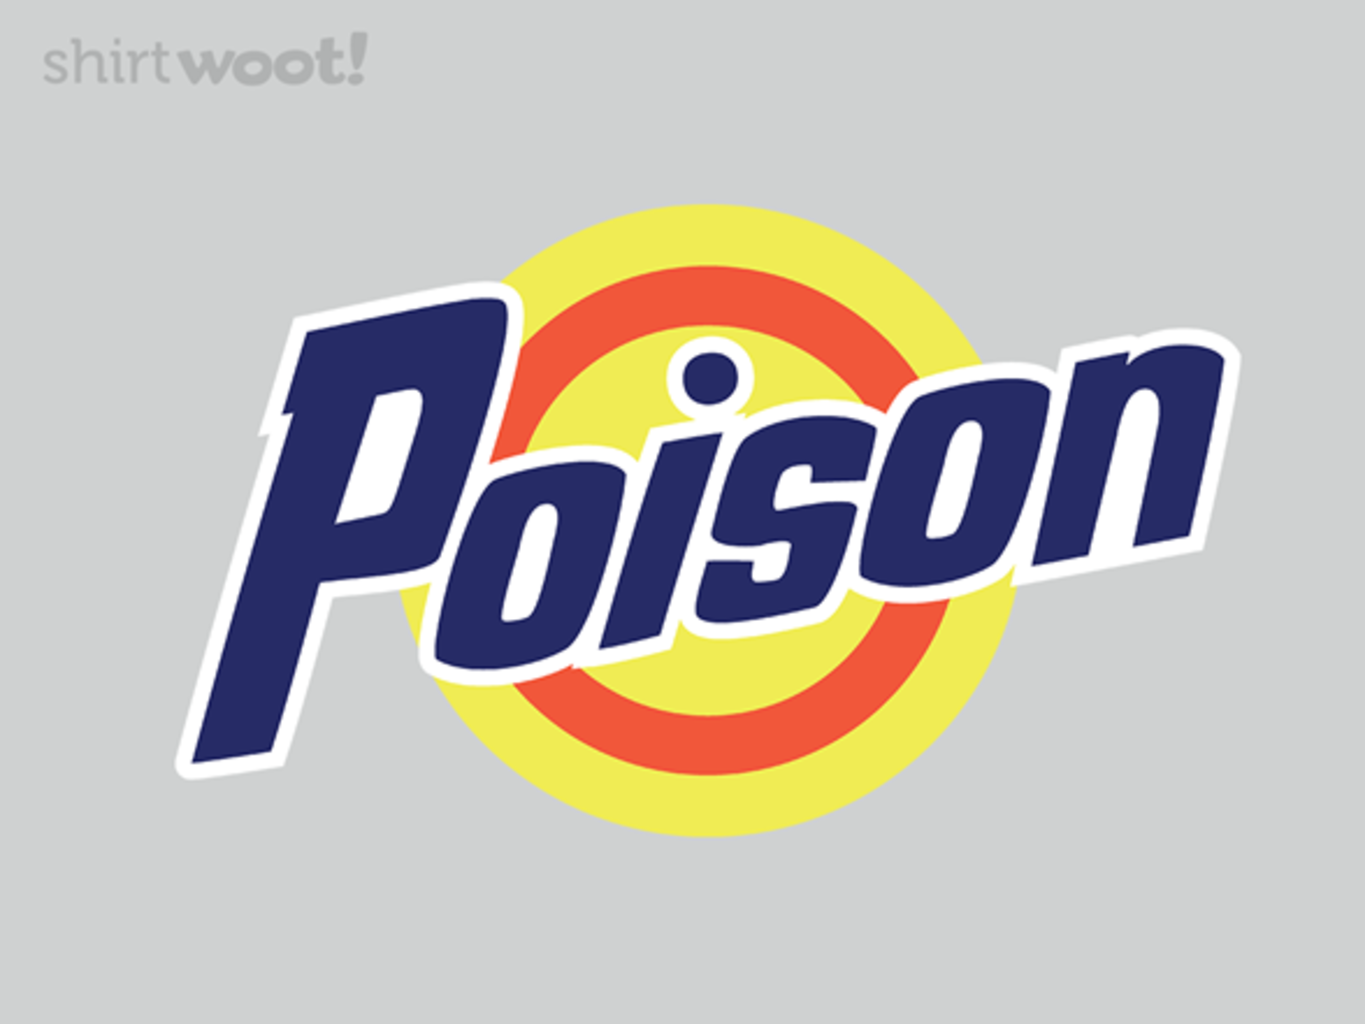 Woot!: Pods are Poison - $15.00 + Free shipping